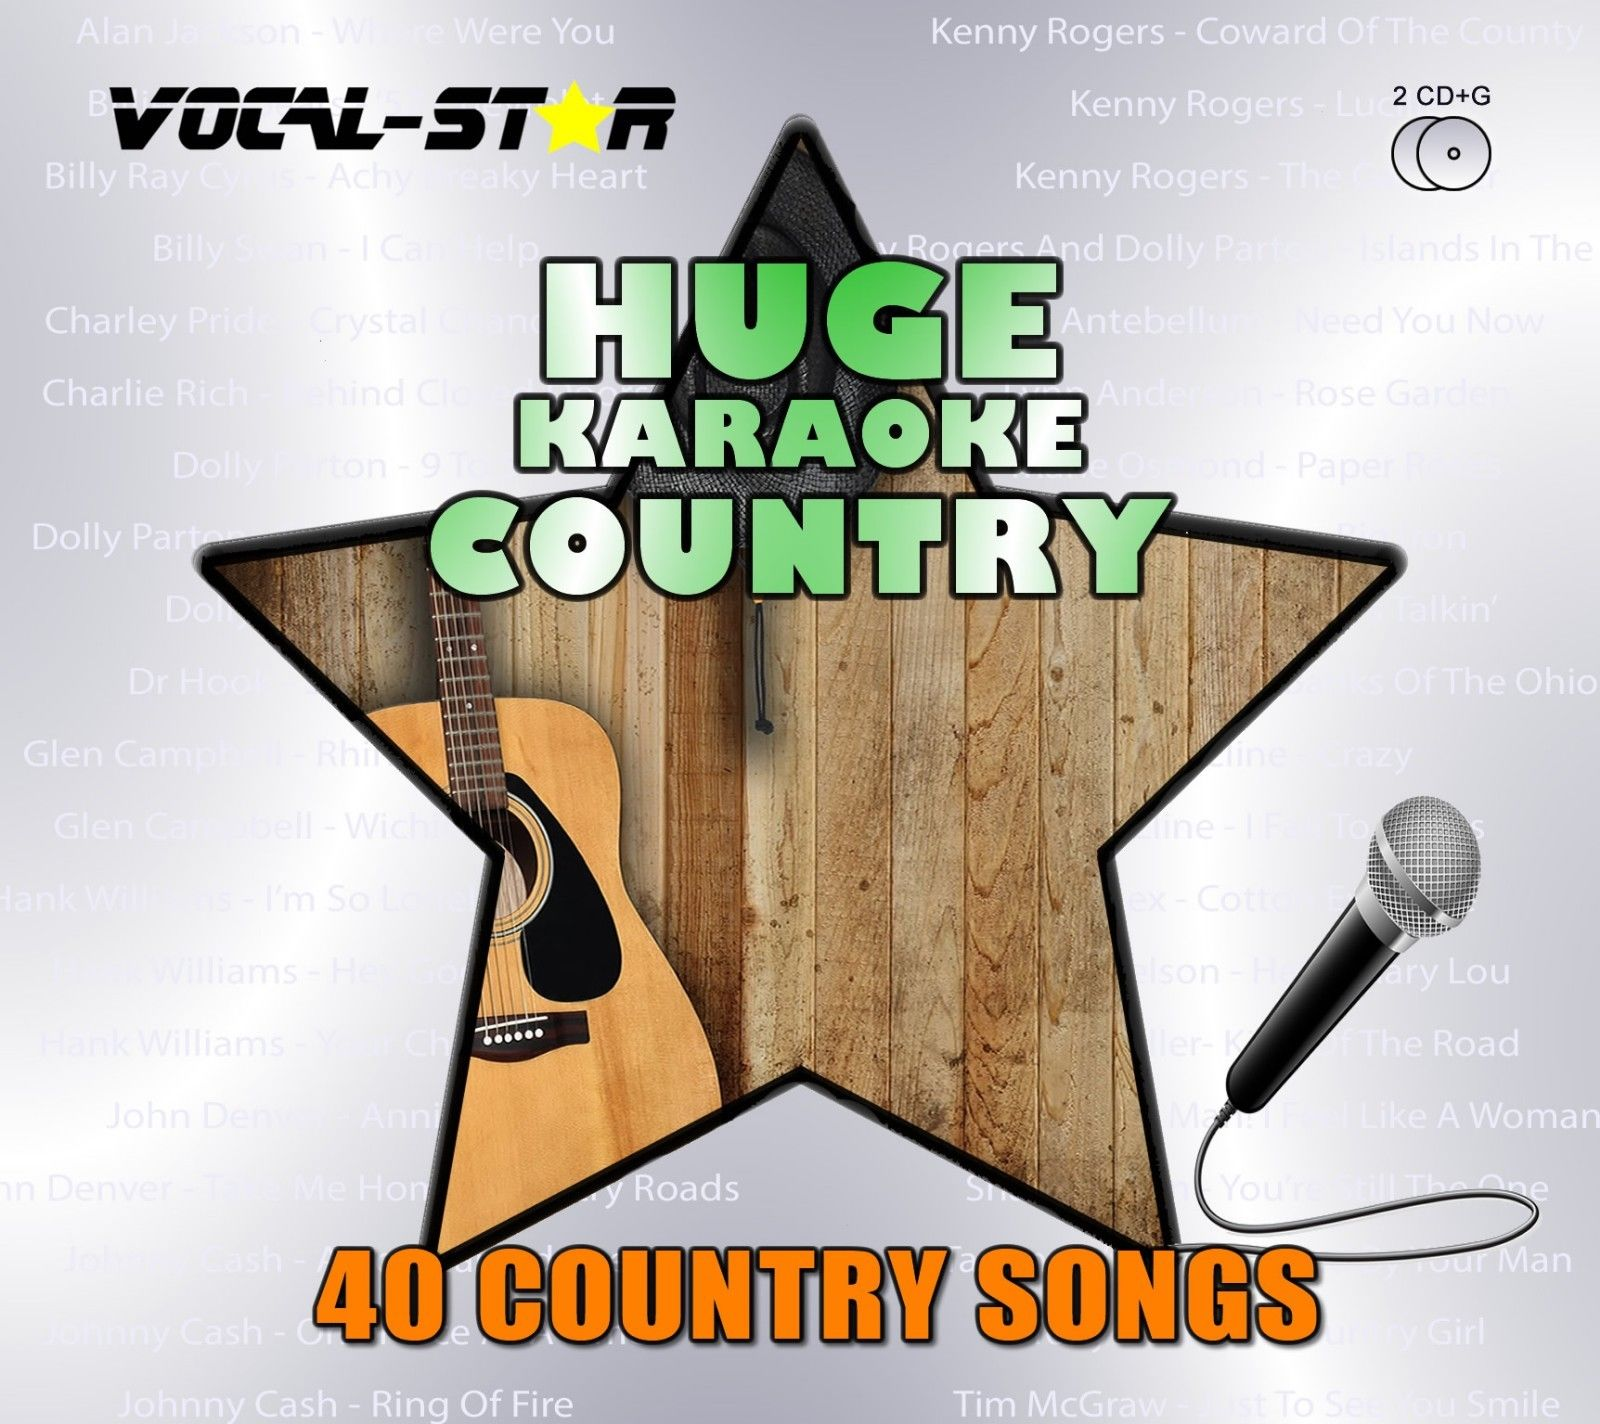 Vocal-Star Huge Karaoke Hits of Country - 40 Songs - 2 CDG Disc Set